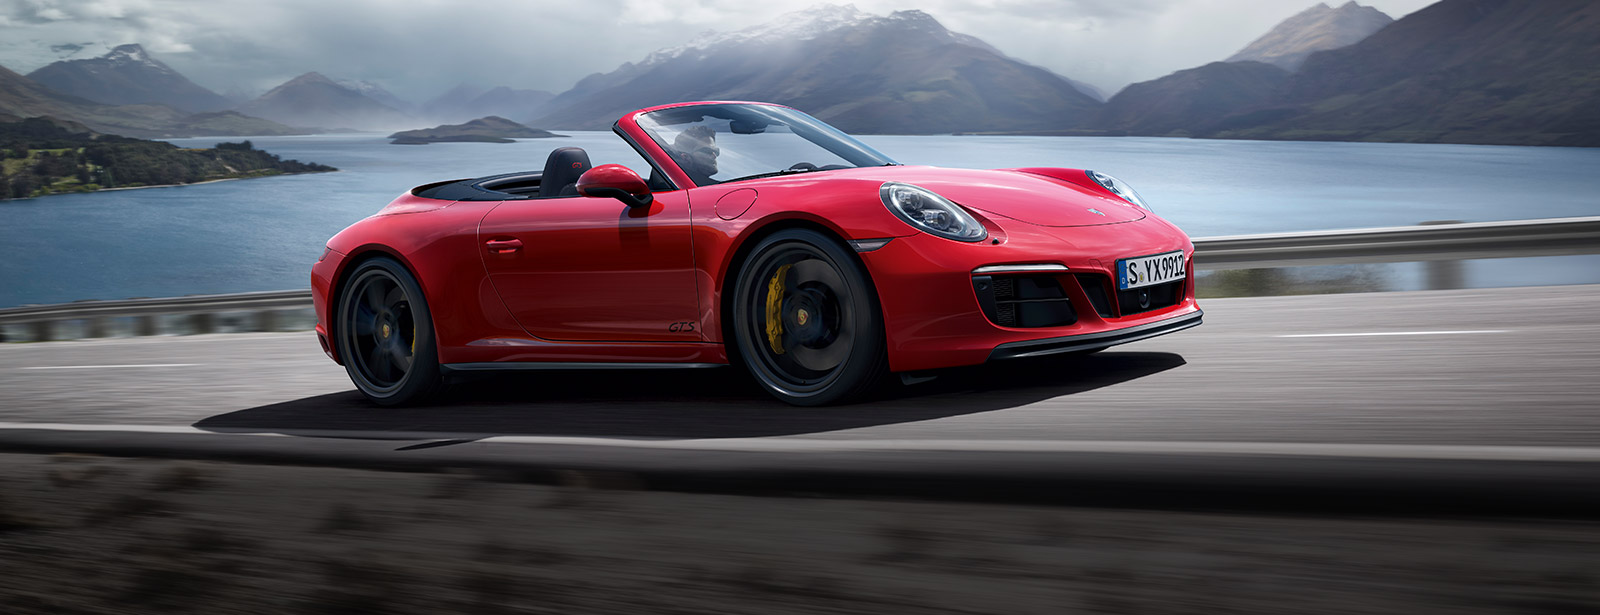 The new 911 Carrera GTS Cabriolet